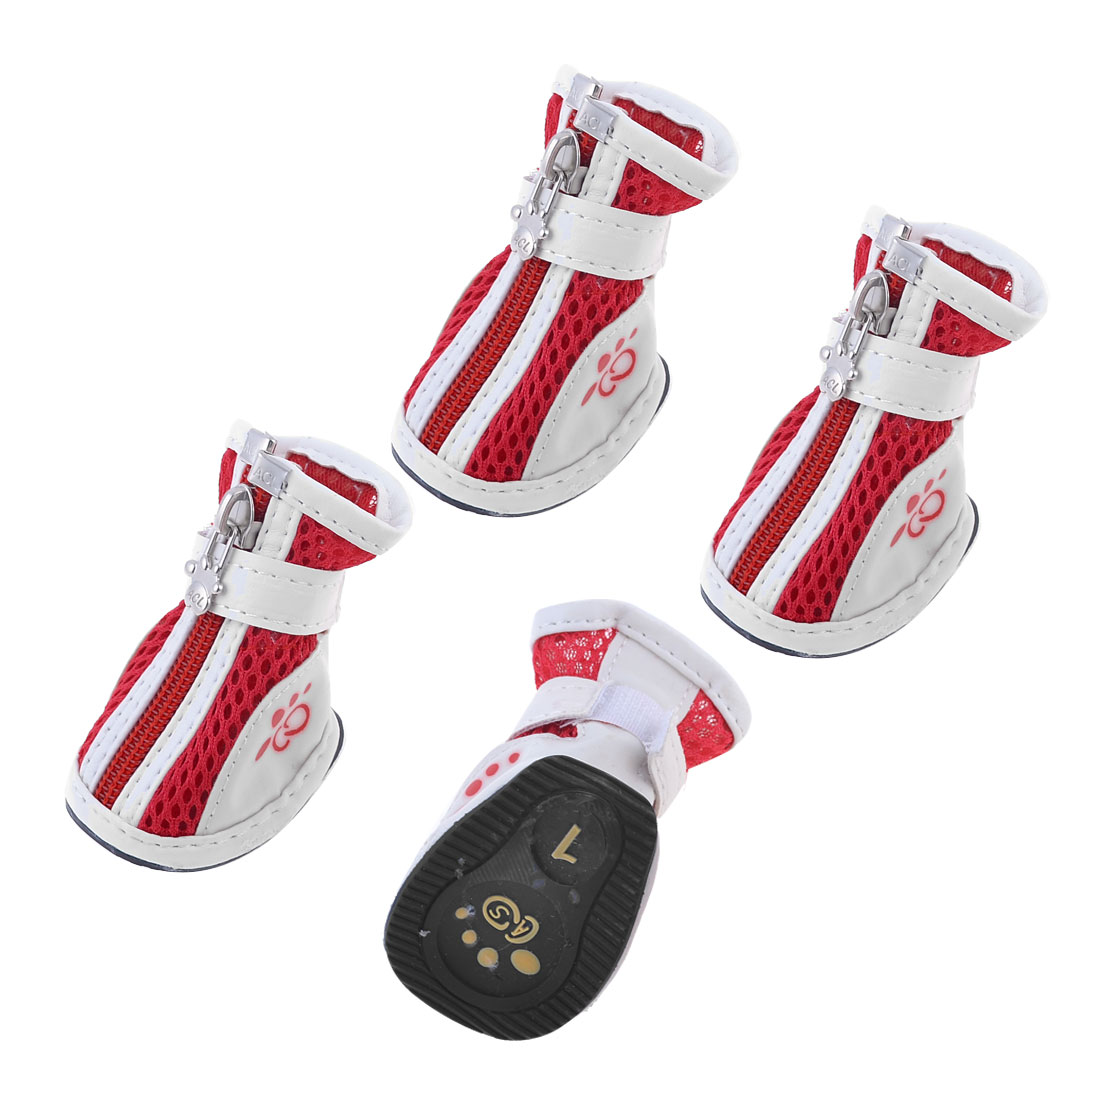 Pet Doggy Yorkie Chihuaha Zipper Closure White Red Meshy Shoes Boots Two Pair XXS